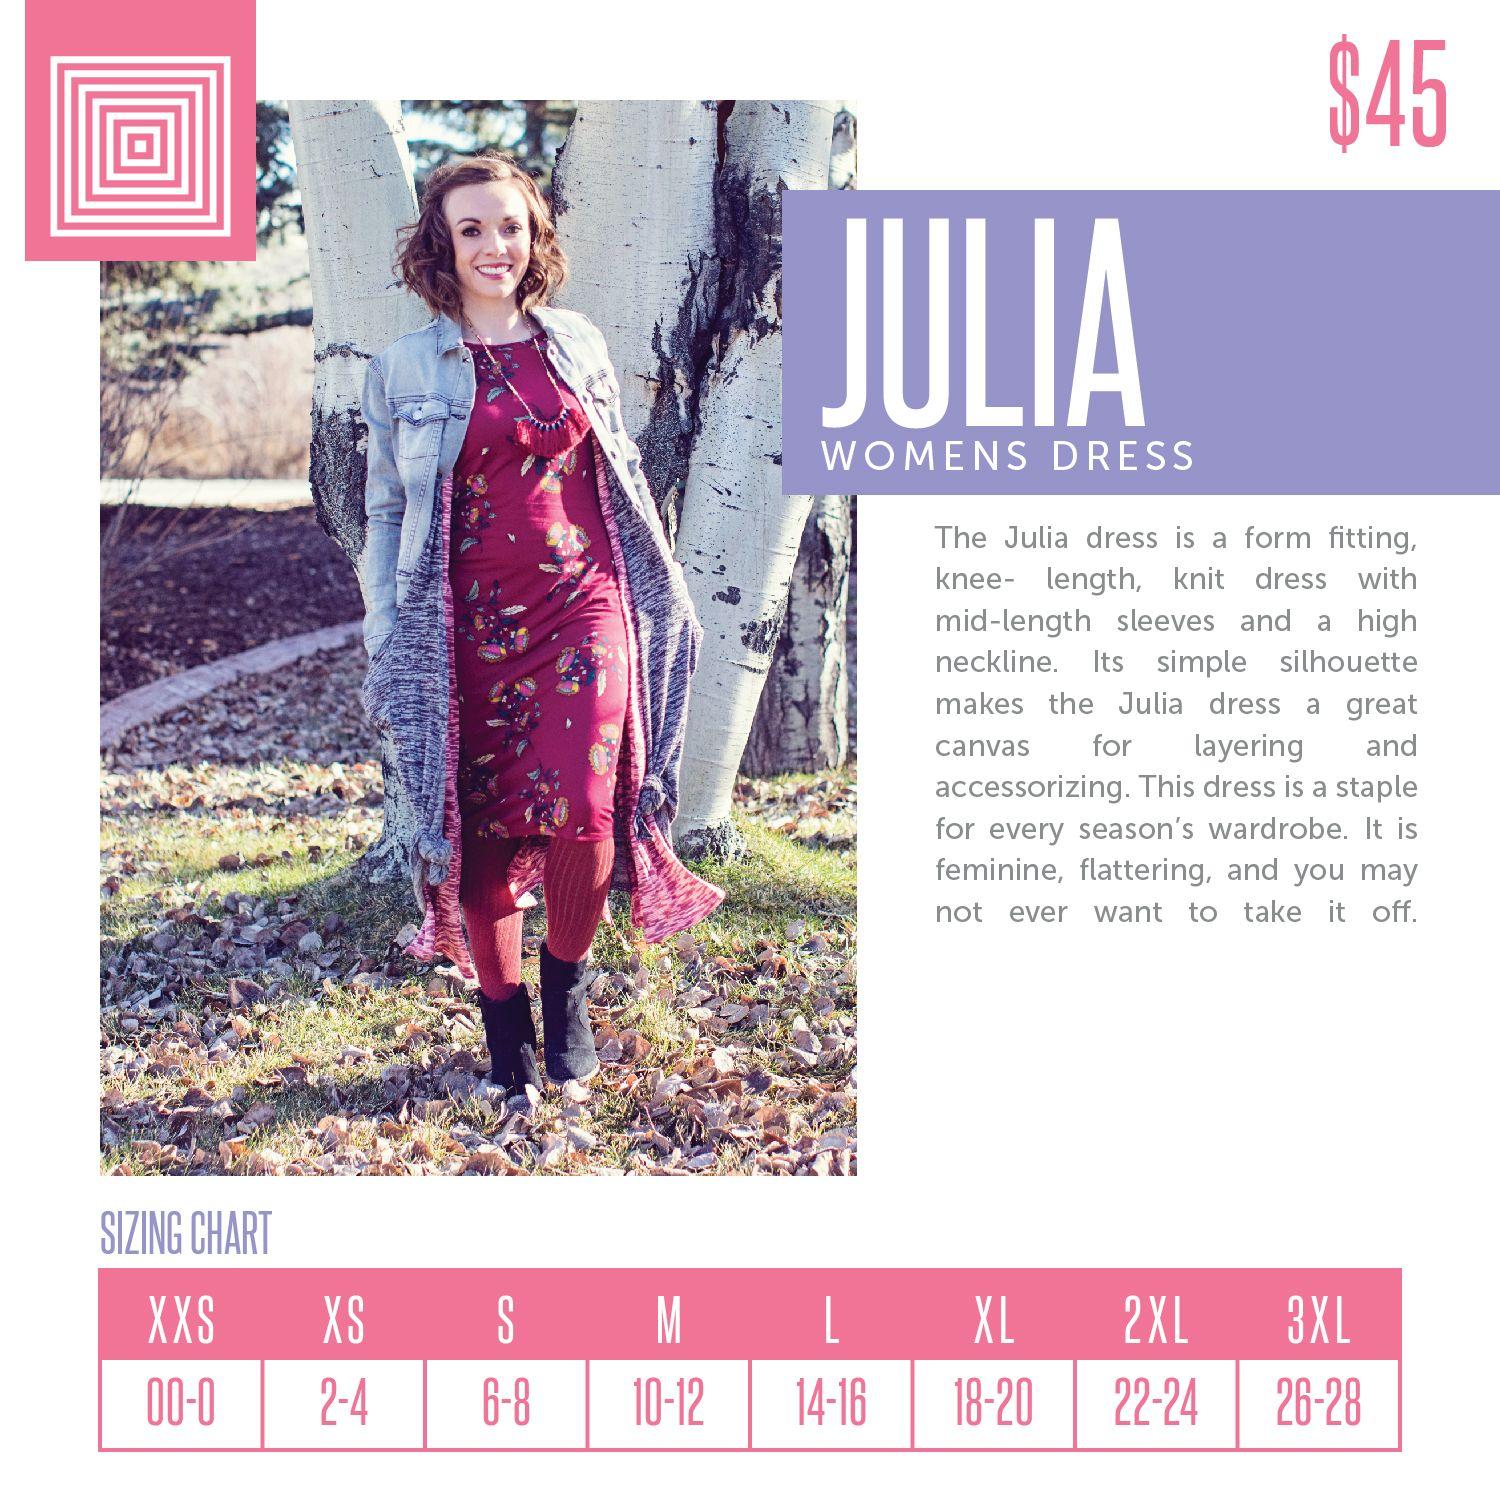 Lularoe julia sizing chart also business graphics in rh pinterest